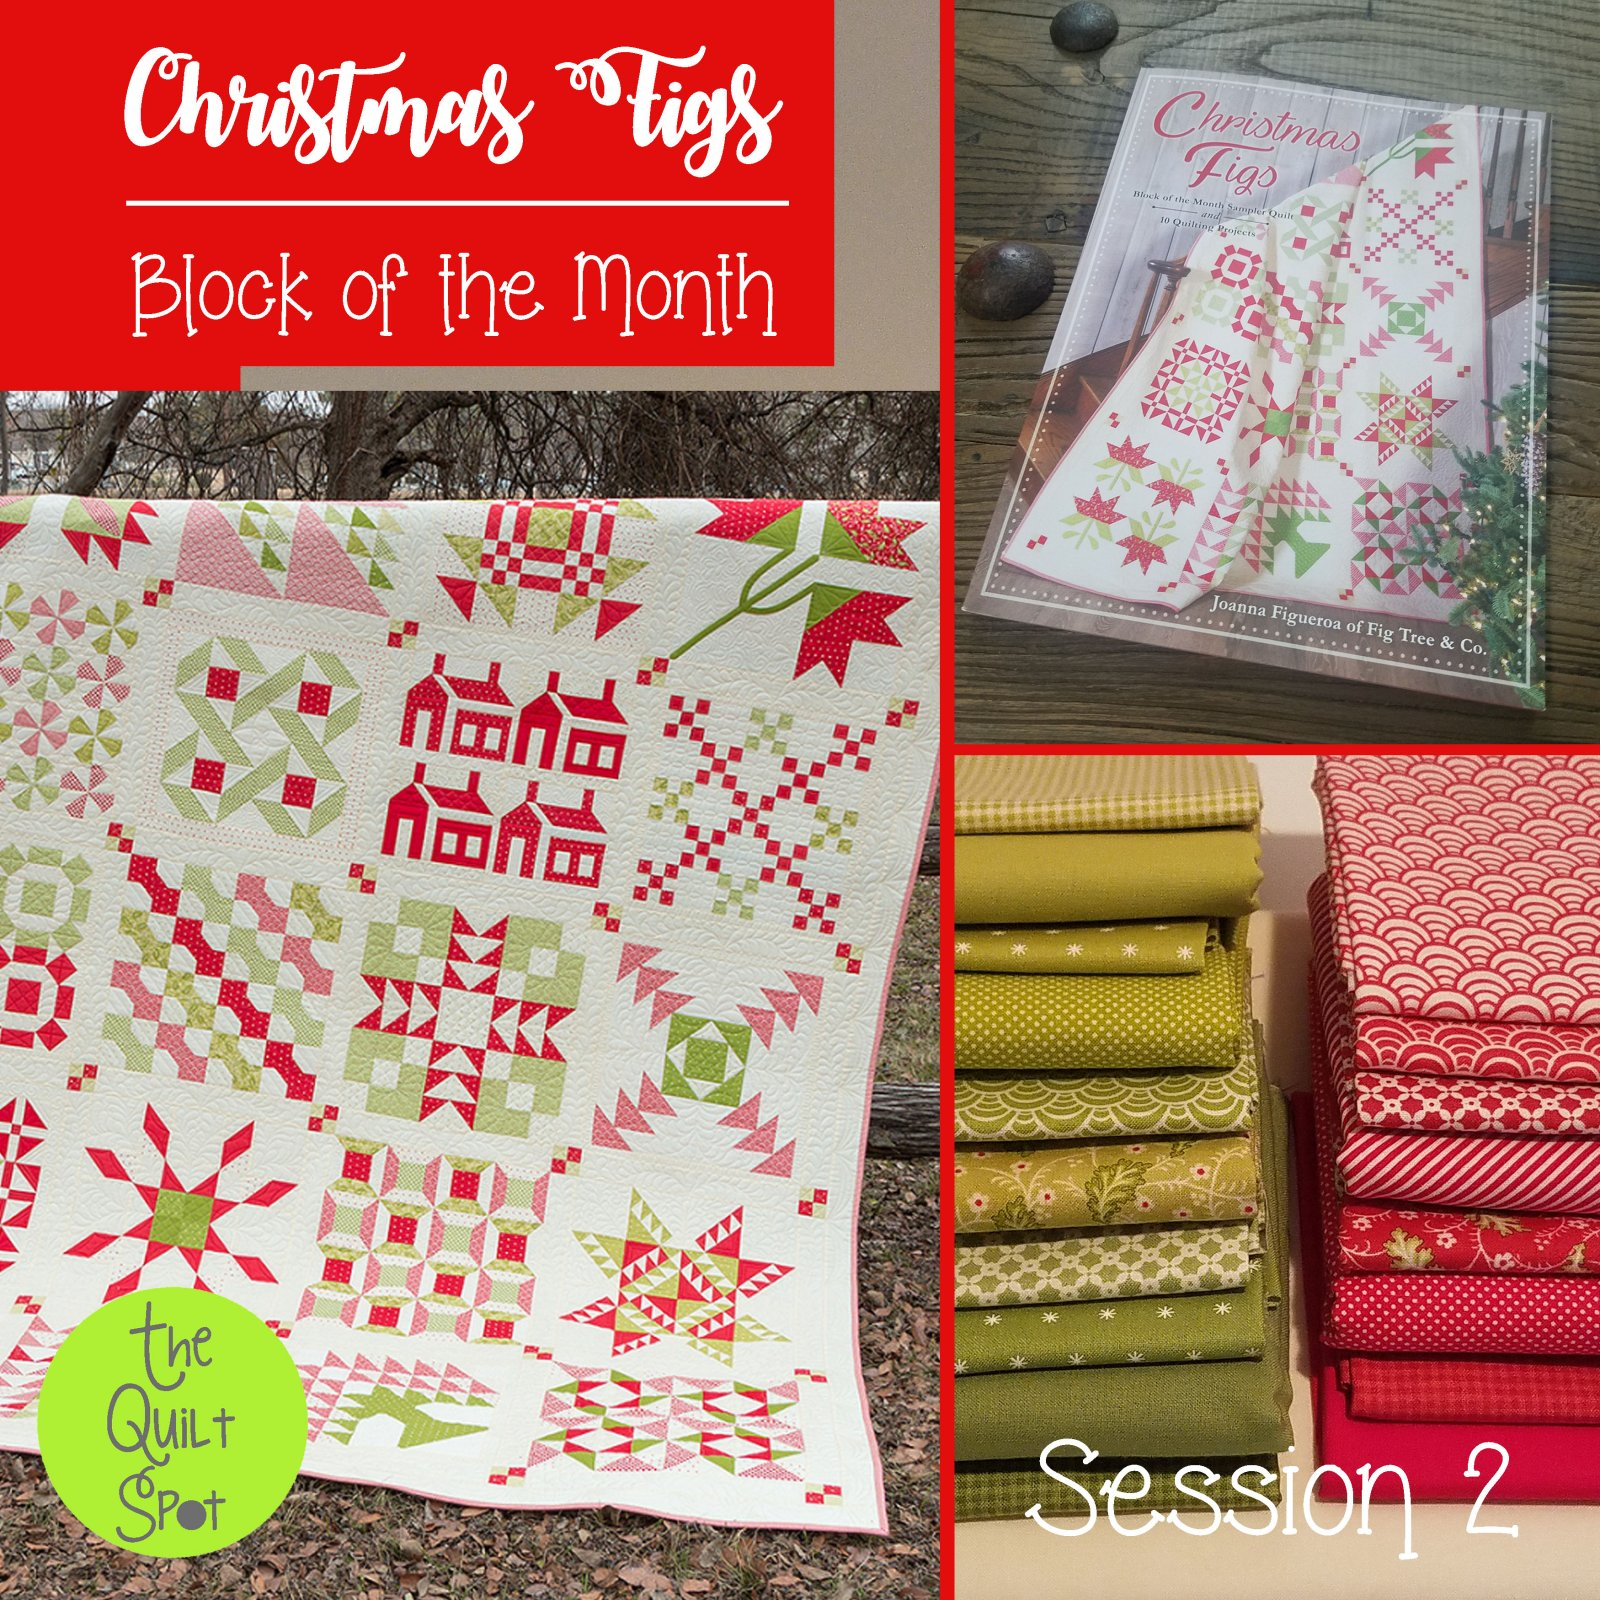 Fig Tree Christmas Block of the Month - Christmas Figs Session 2